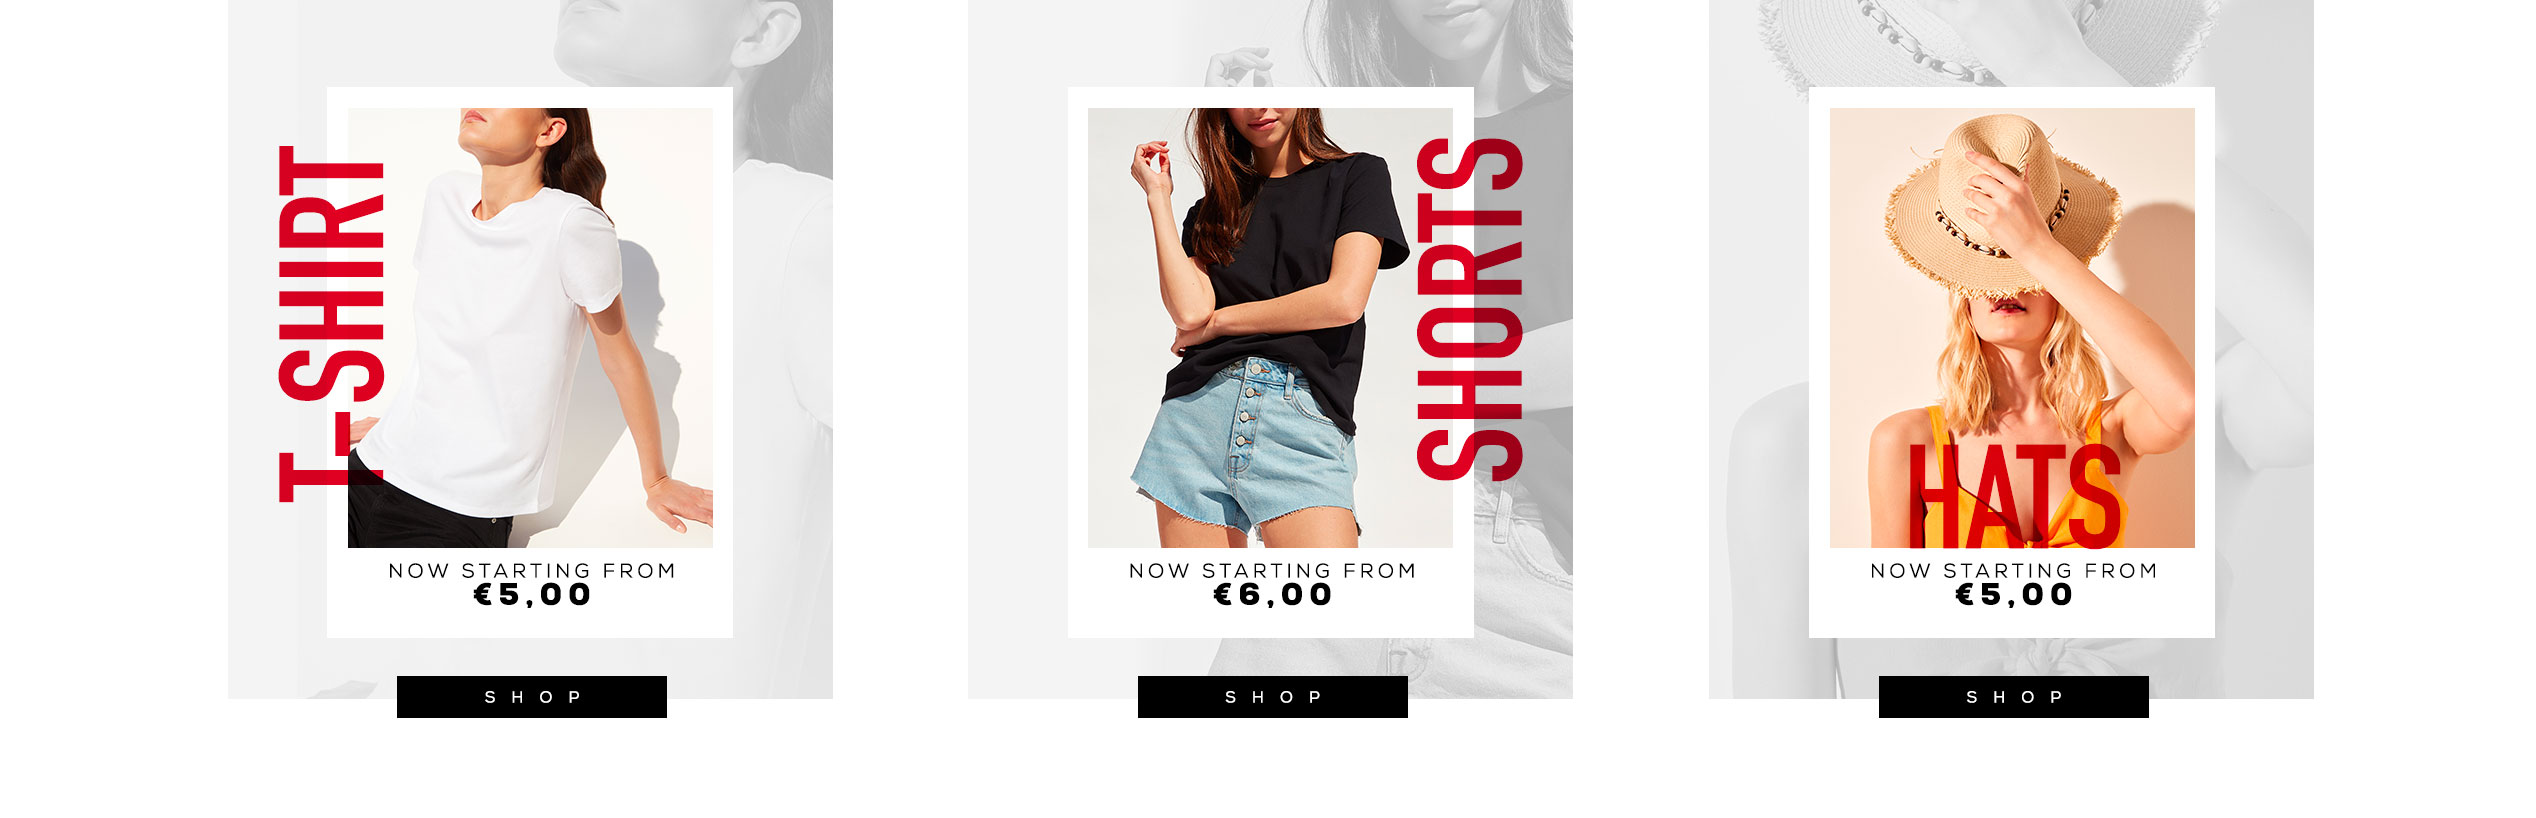 98537a9683 ONLINE CLOTHING: CASUAL, TRENDY STYLE FOR MEN, WOMEN AND KIDS. OVS is  Italy's ...